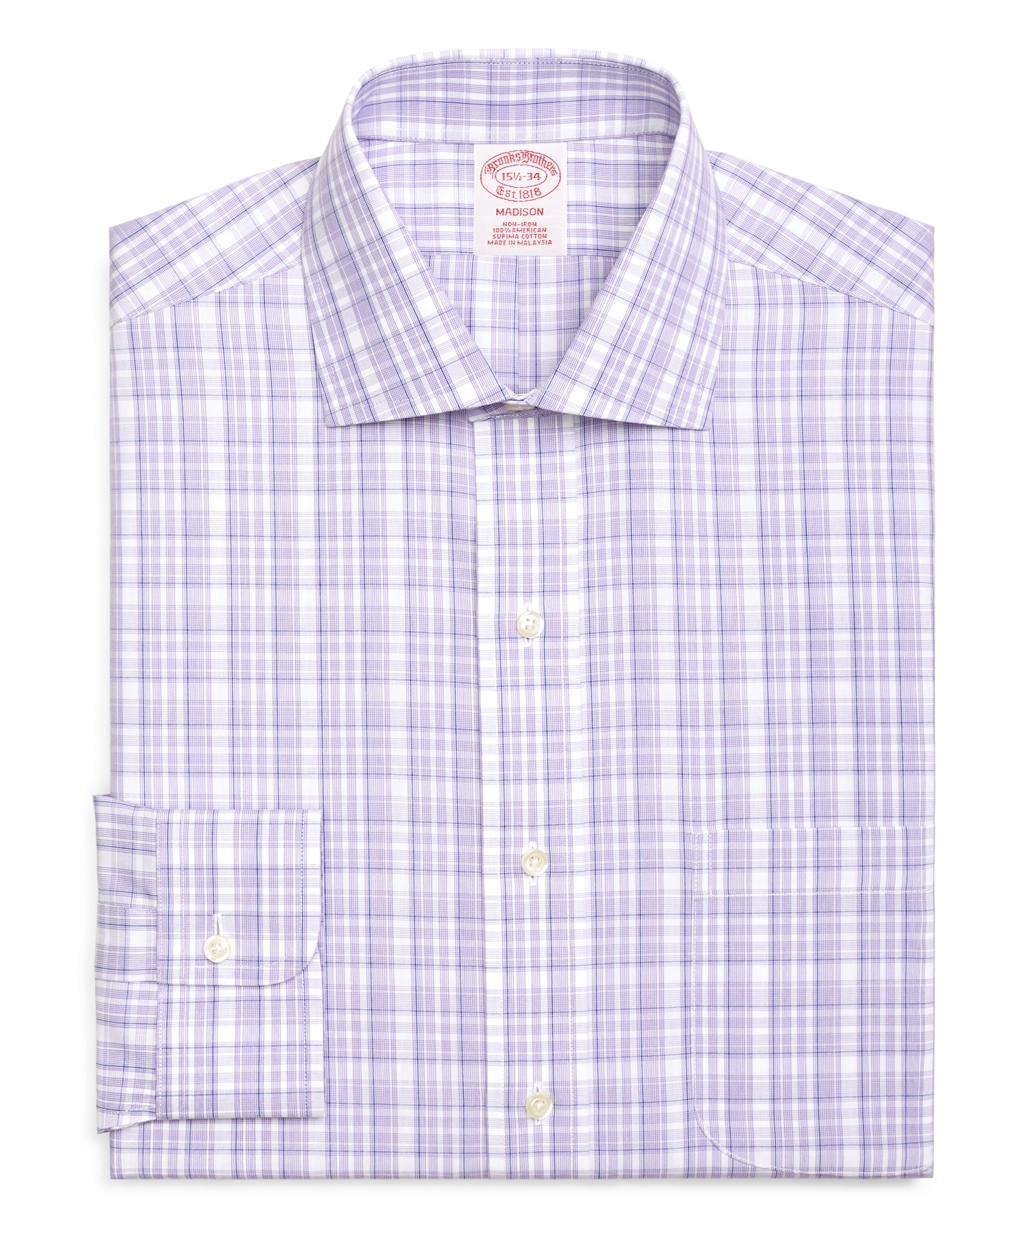 Brooks brothers non iron madison fit sidewheeler check Brooks brothers shirt size guide